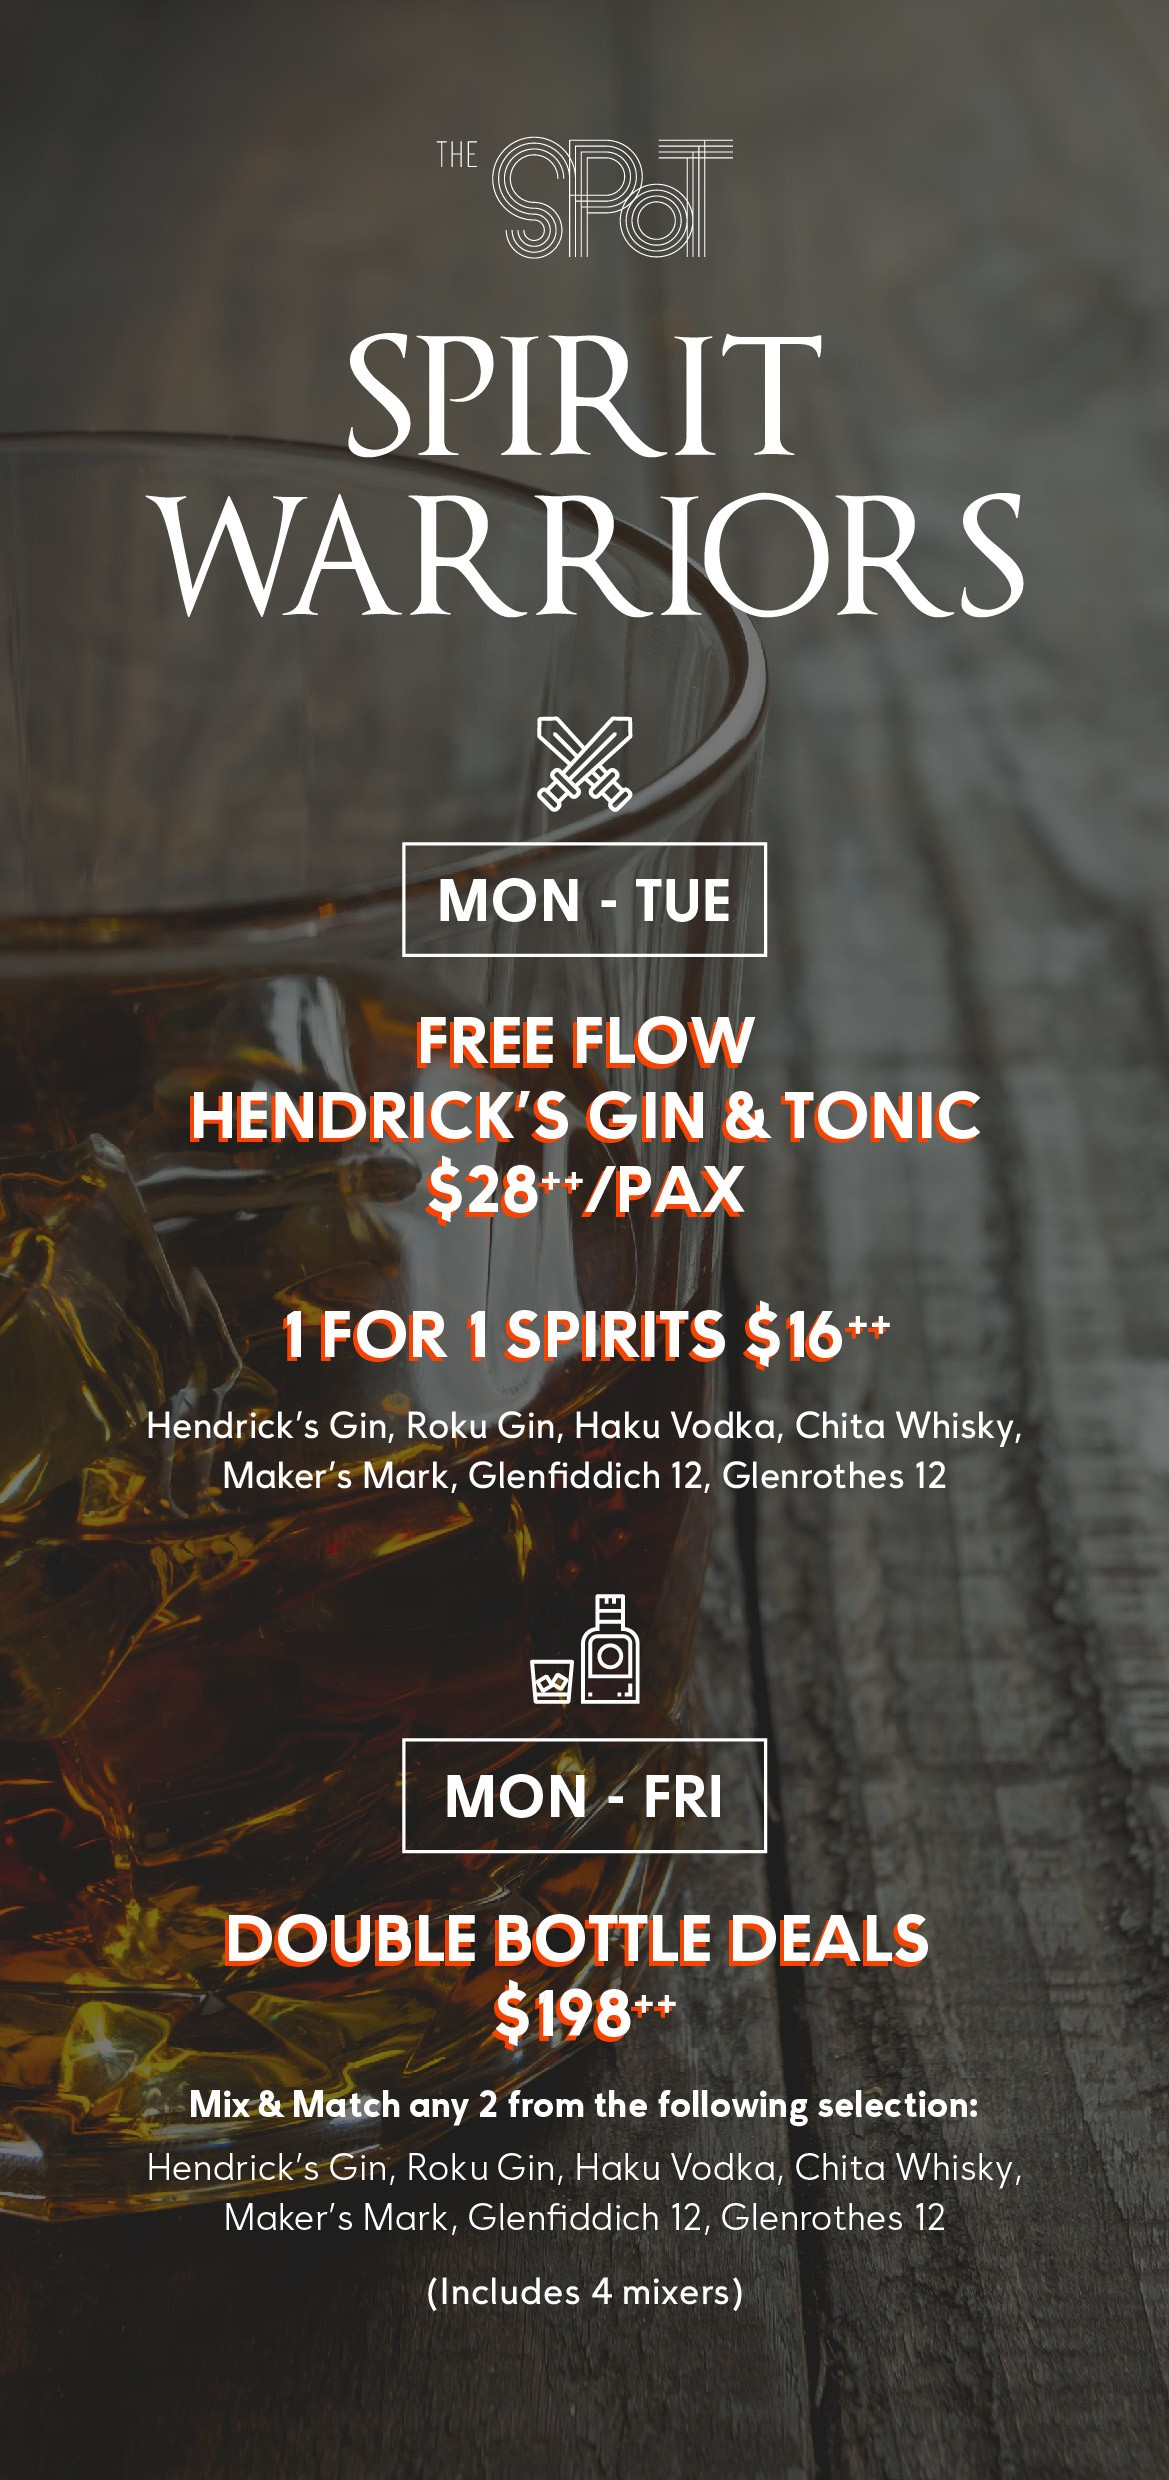 Free-flow Gin & Tonic and 1-for-1 spirits on Mondays and Tuesdays at The Spot